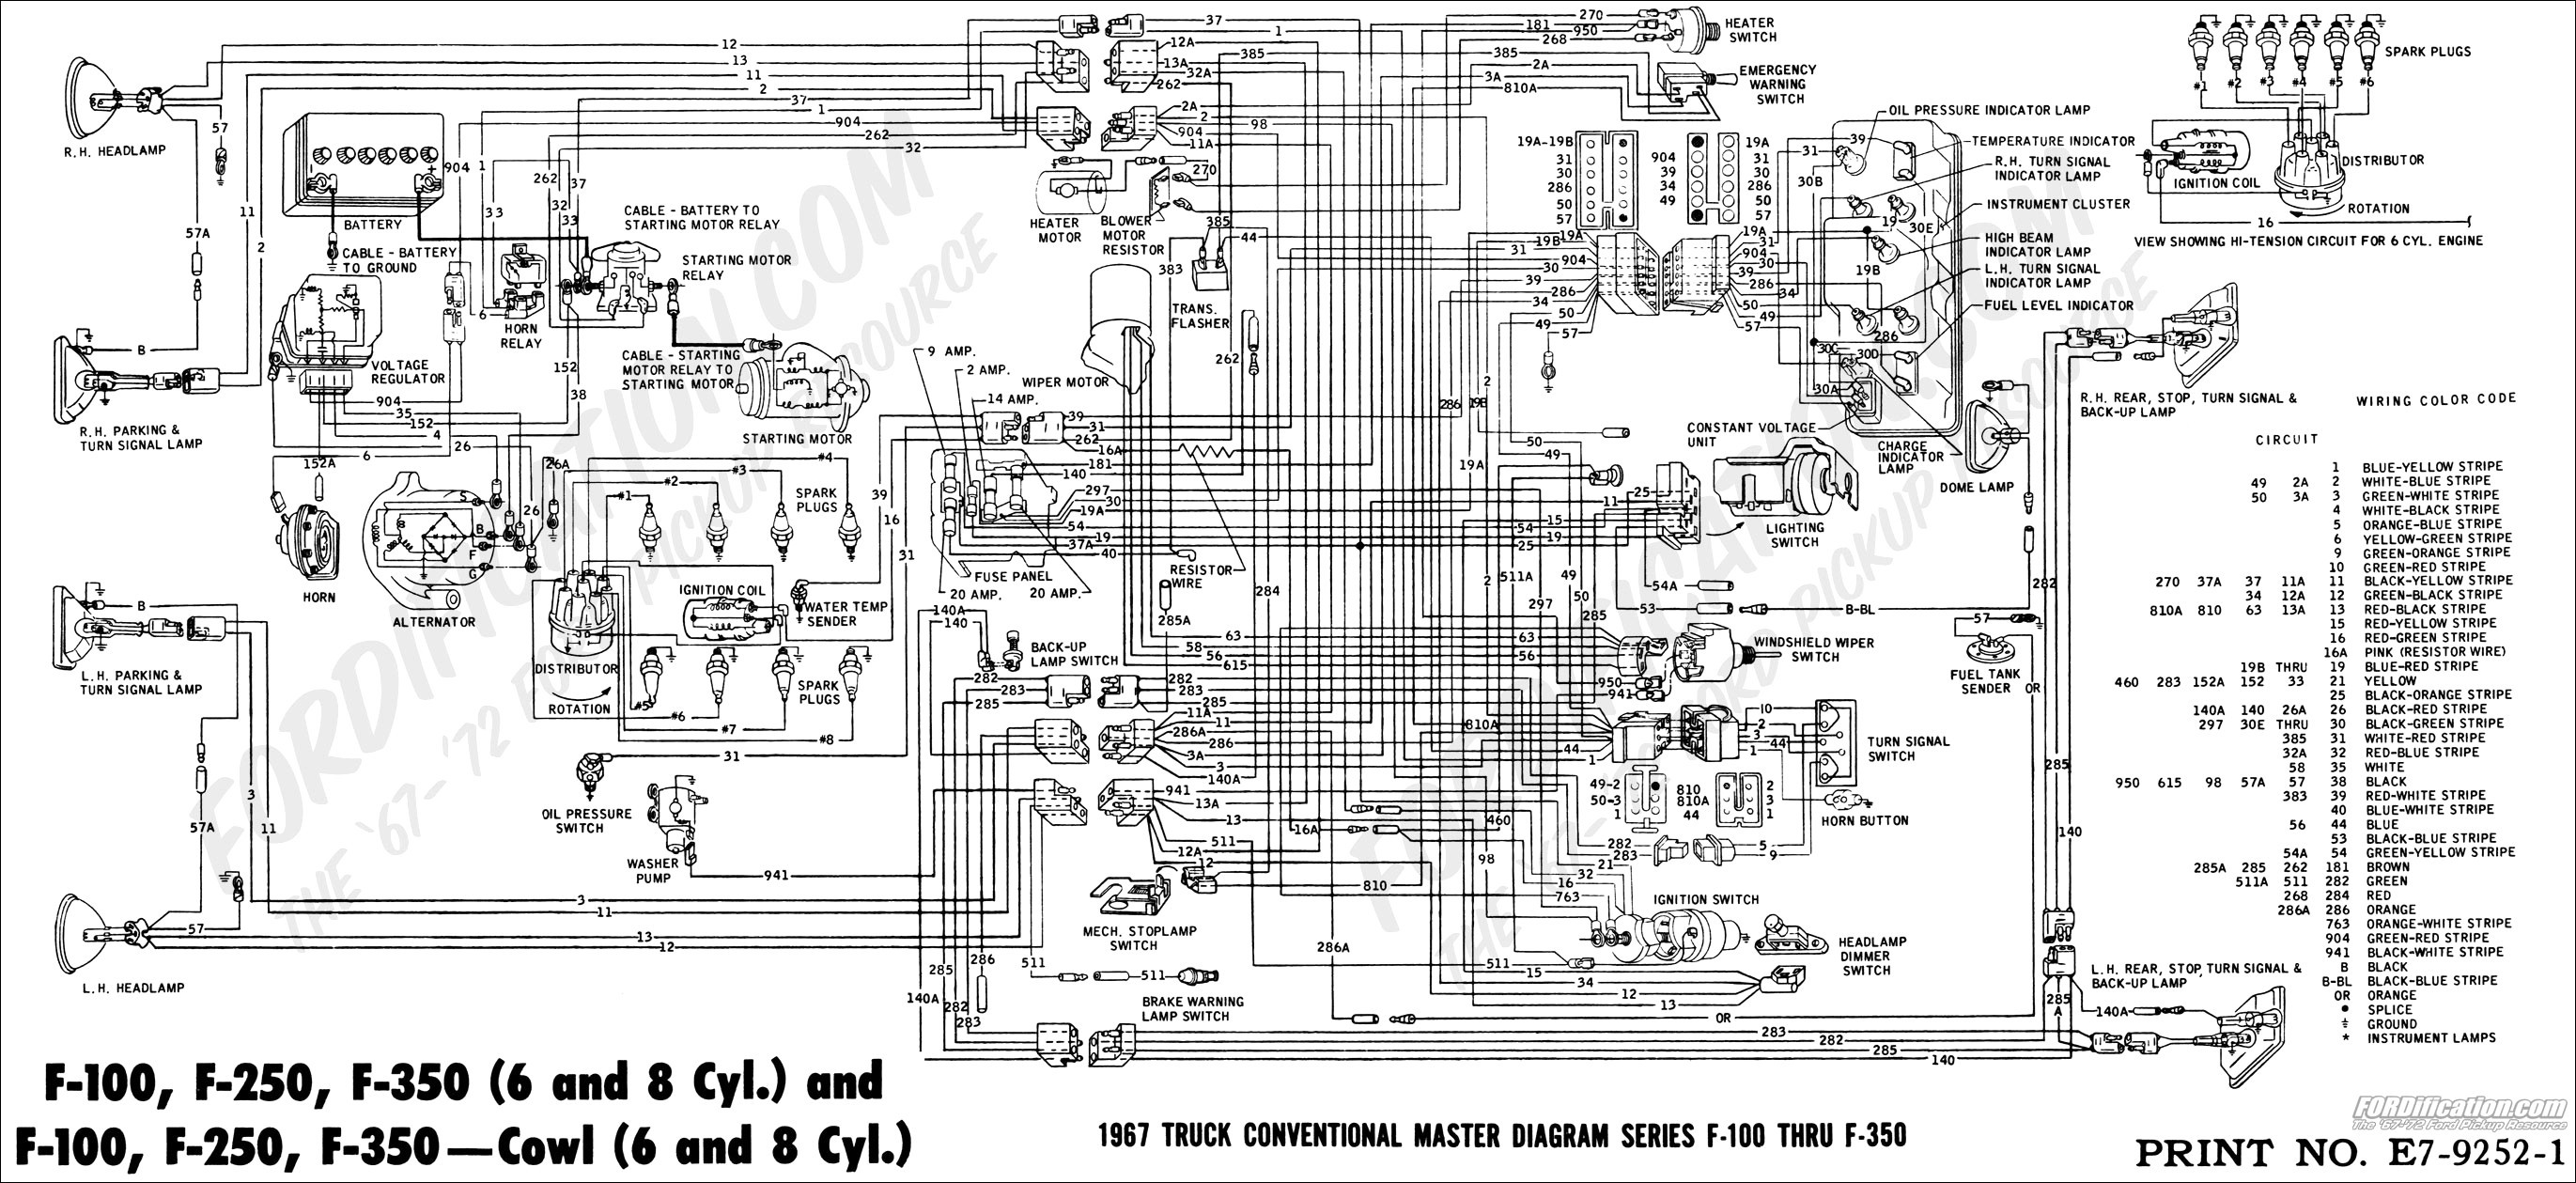 1987 Ford F700 Wiring Diagram - Data Wiring Diagrams • Truck Ford F Wiring Diagrams on 1985 dodge ram 3500 wiring diagram, 1985 ford f800 parts, 1985 chevrolet silverado wiring diagram, 1990 ford f800 wiring diagram, 1985 ford f800 solenoid, 1985 ford f800 clutch, 1986 ford f800 wiring diagram, 1991 ford f800 wiring diagram,